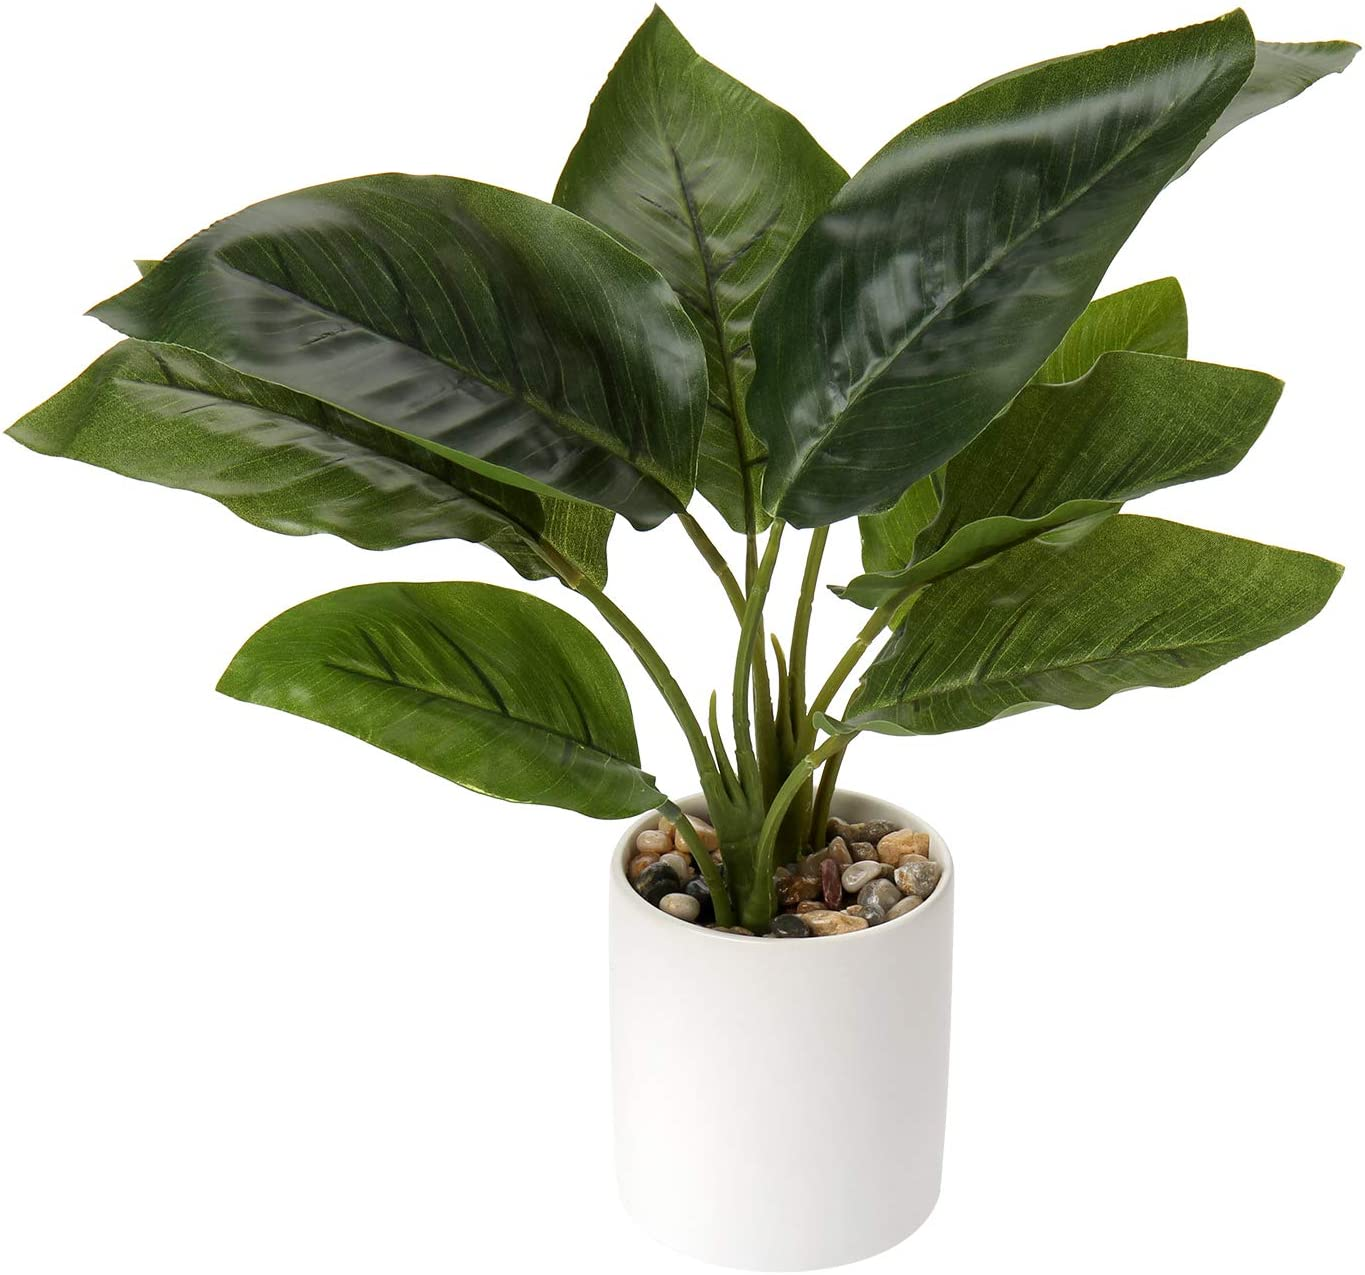 Fake Plants, Artificial Potted Greenery Leaf Plant in White Ceramics Pot Fiddle Leaf Fig Calathea Mini Faux Bonsai Plant Flowers Indoor for Home Office Desk Bathroom Shower Room Garden Decorations